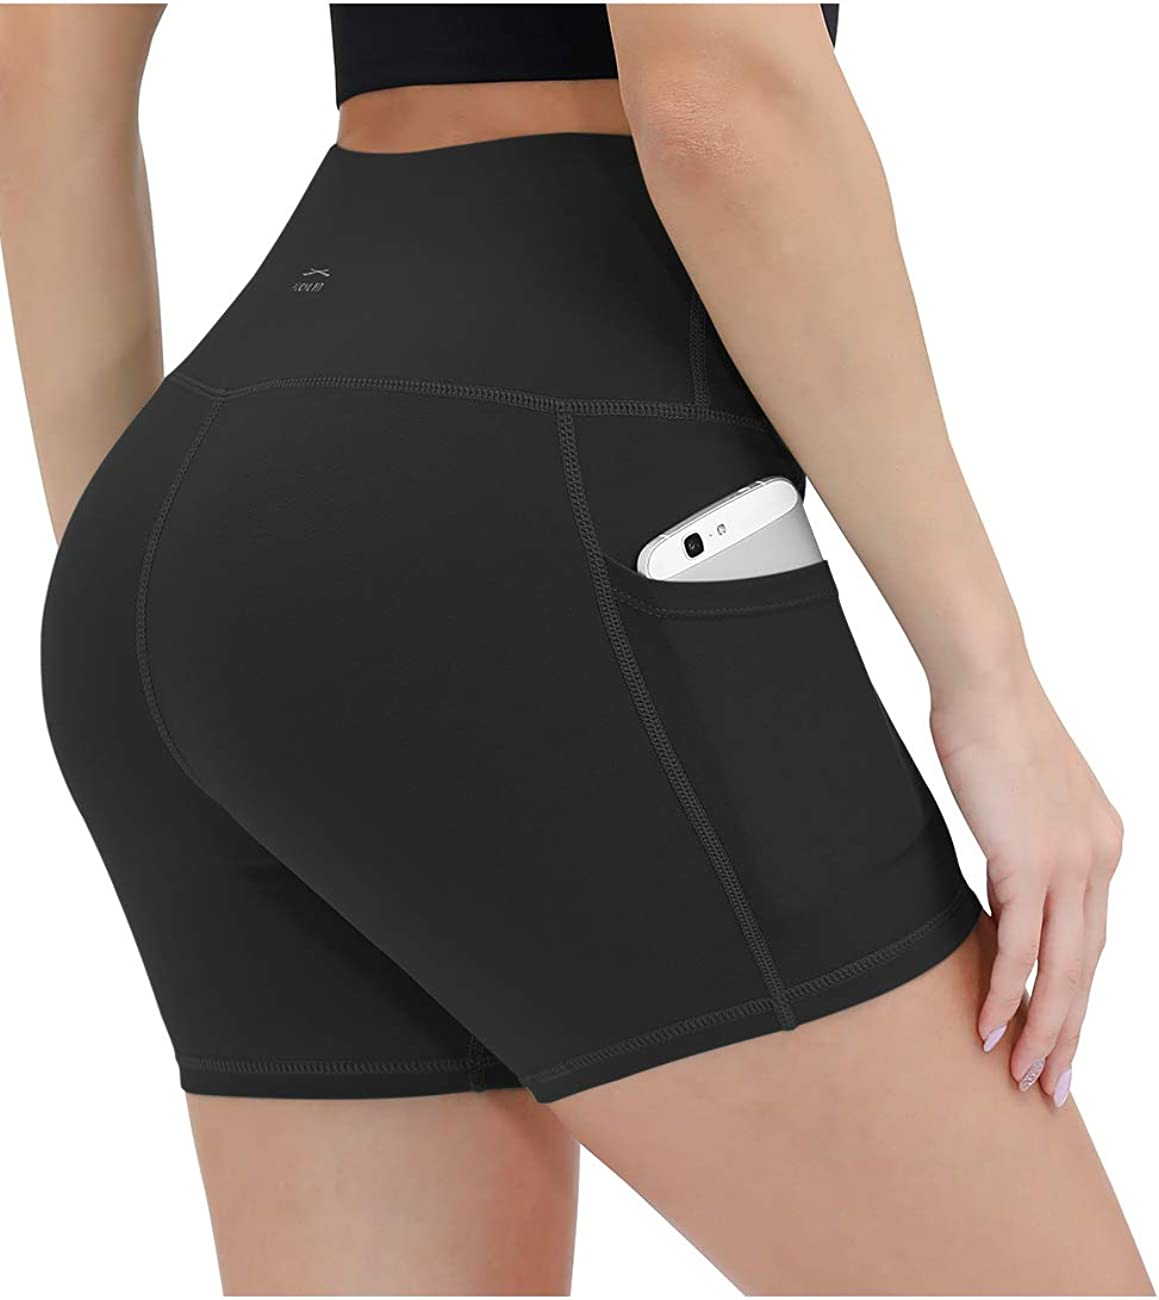 ALONG FIT Yoga Shorts for Women High Waisted Biker Shorts with Pockets